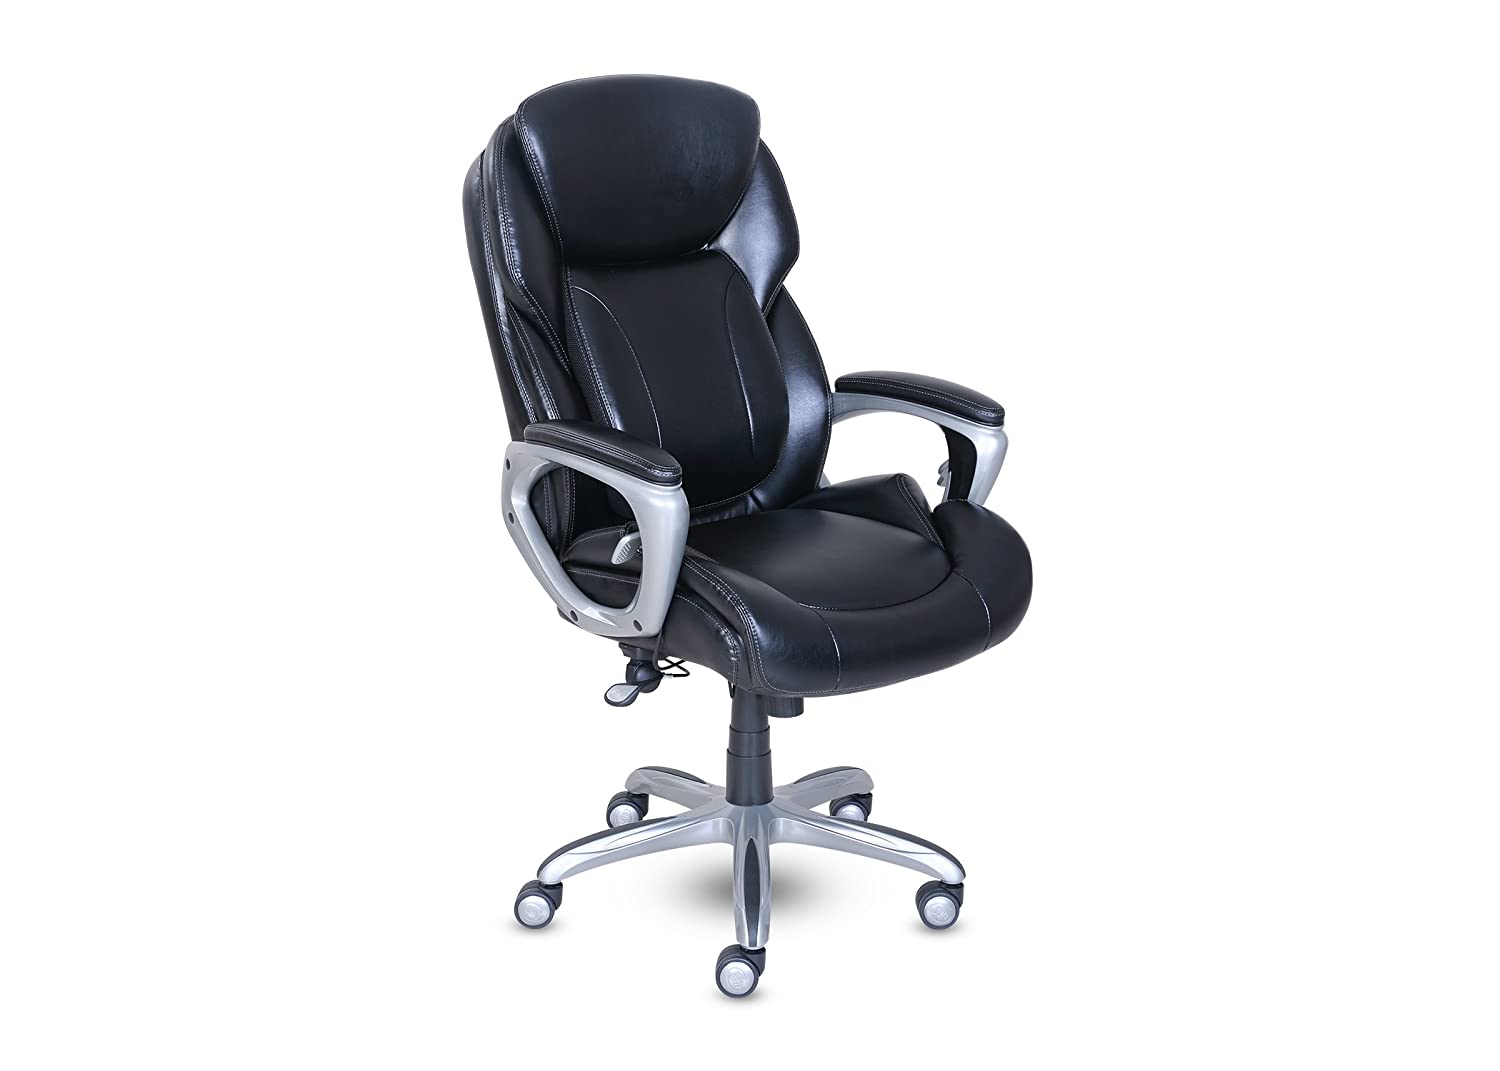 Serta My Fit Executive Office Chair with Tailored Reach - Black